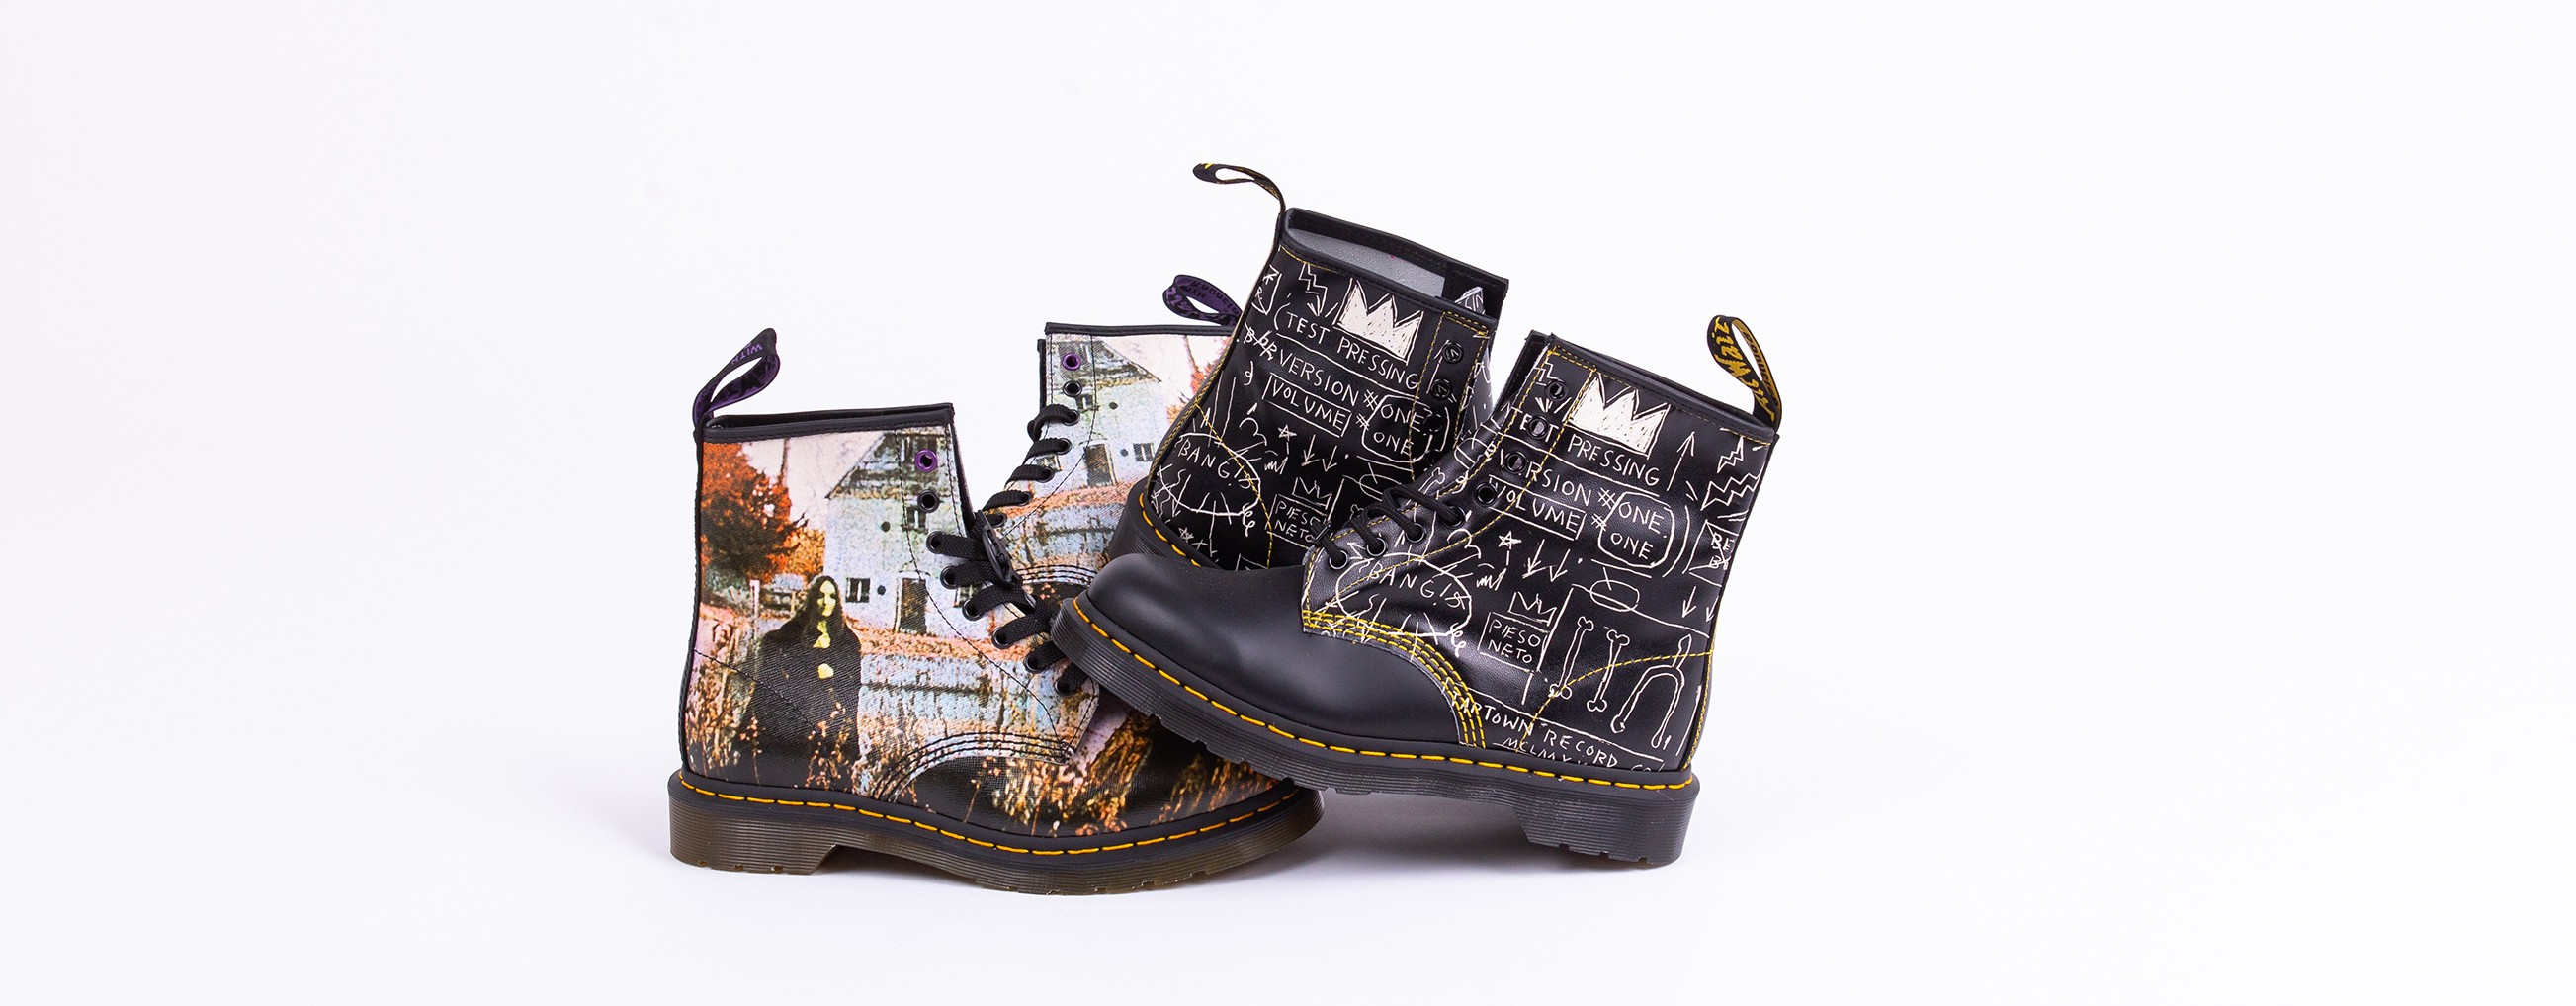 Dr Martens - Iconic Boots